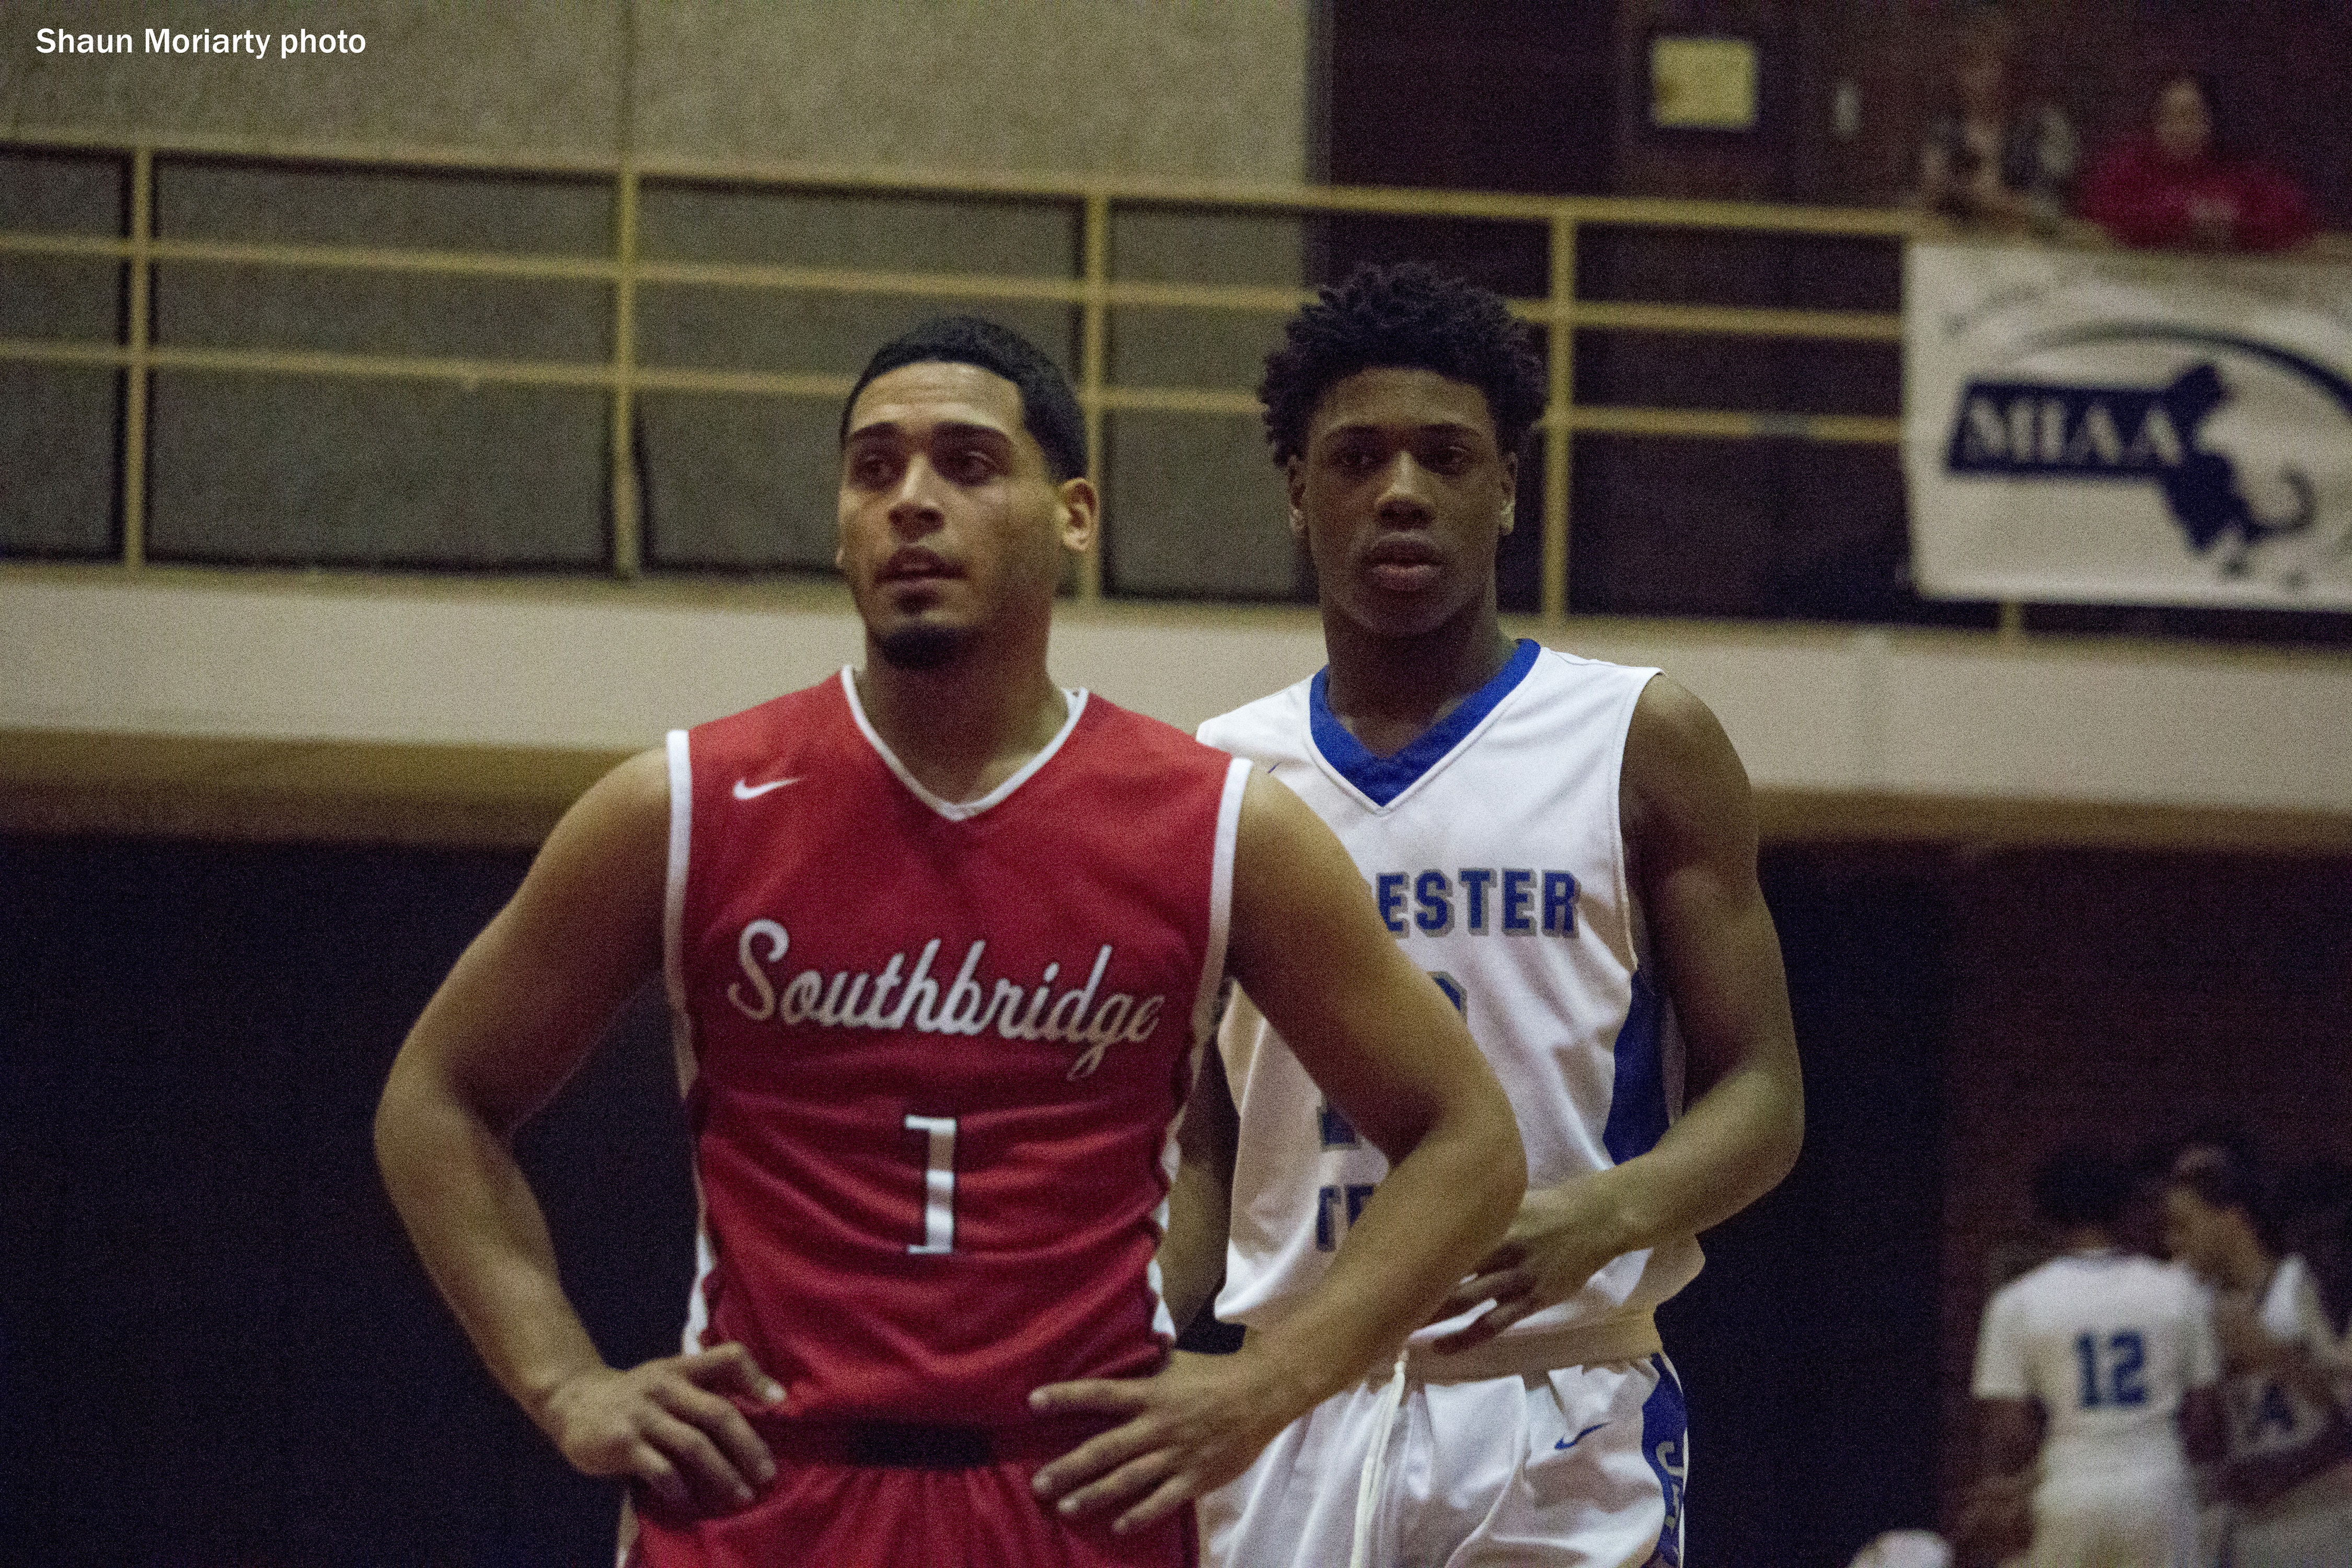 Boys Basketball: Southbridge 50, Worcester Tech 77